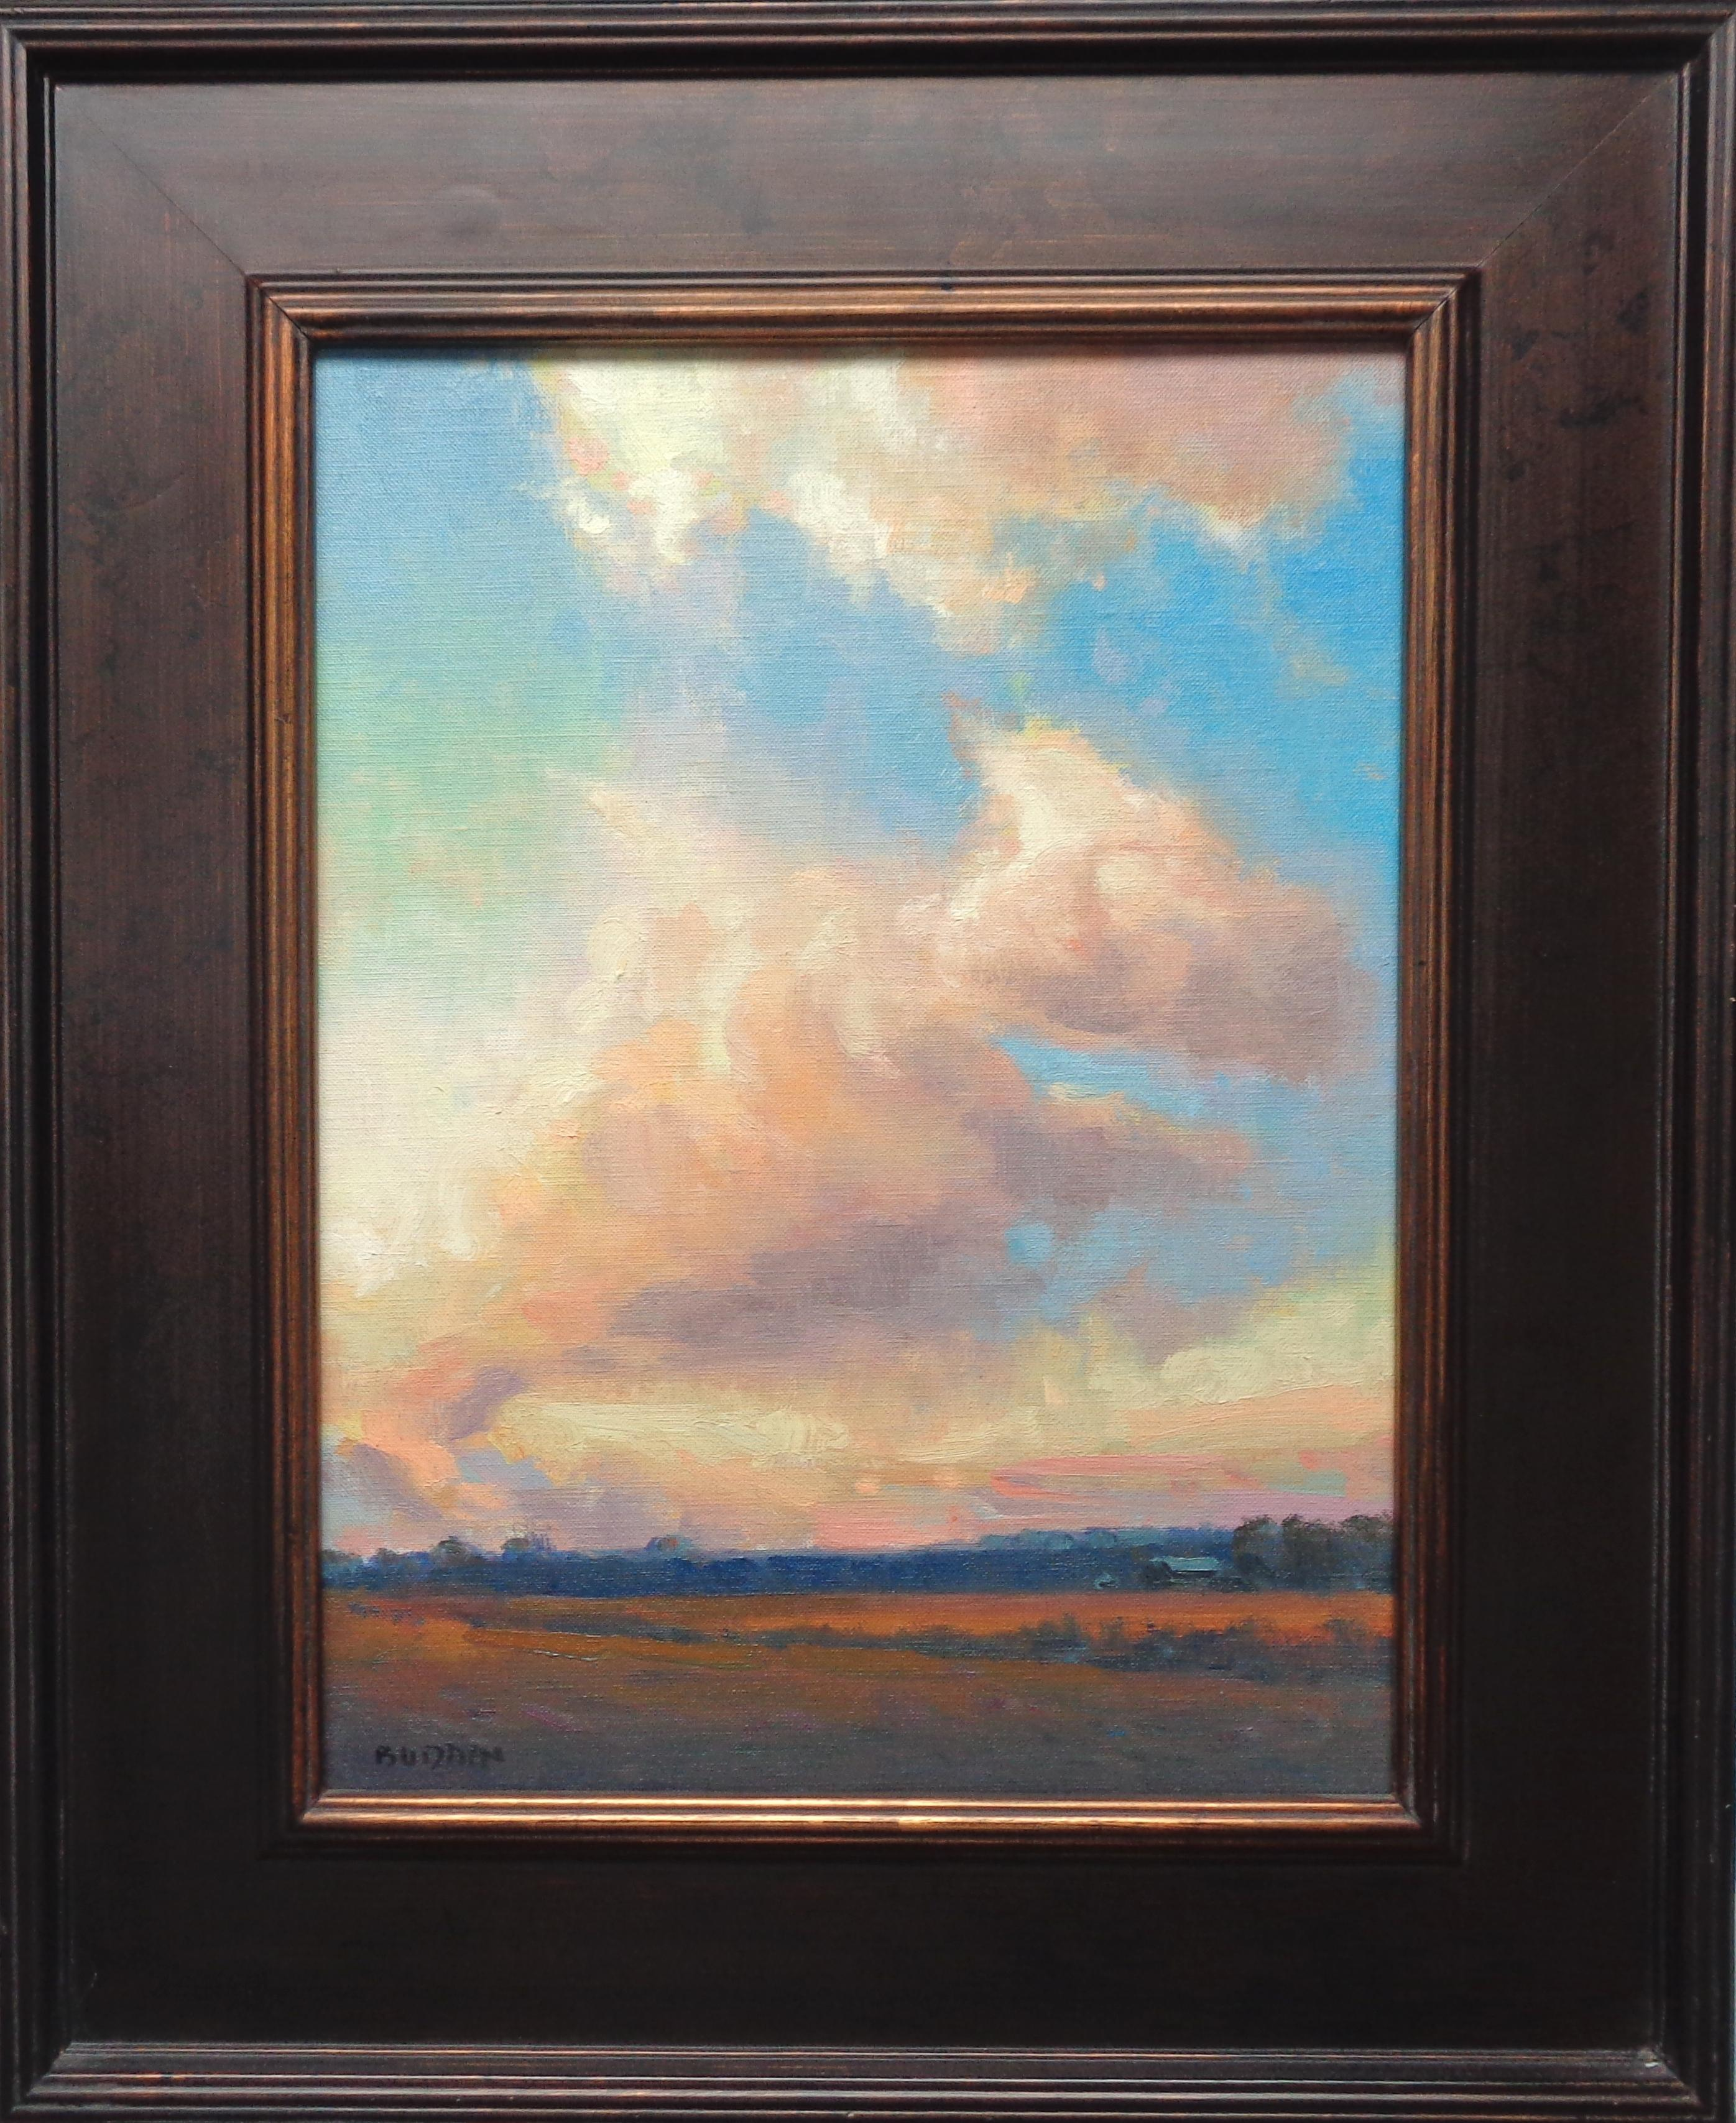 Dramatic Sunset Landscape & Clouds Impressionistic Oil Painting Michael Budden